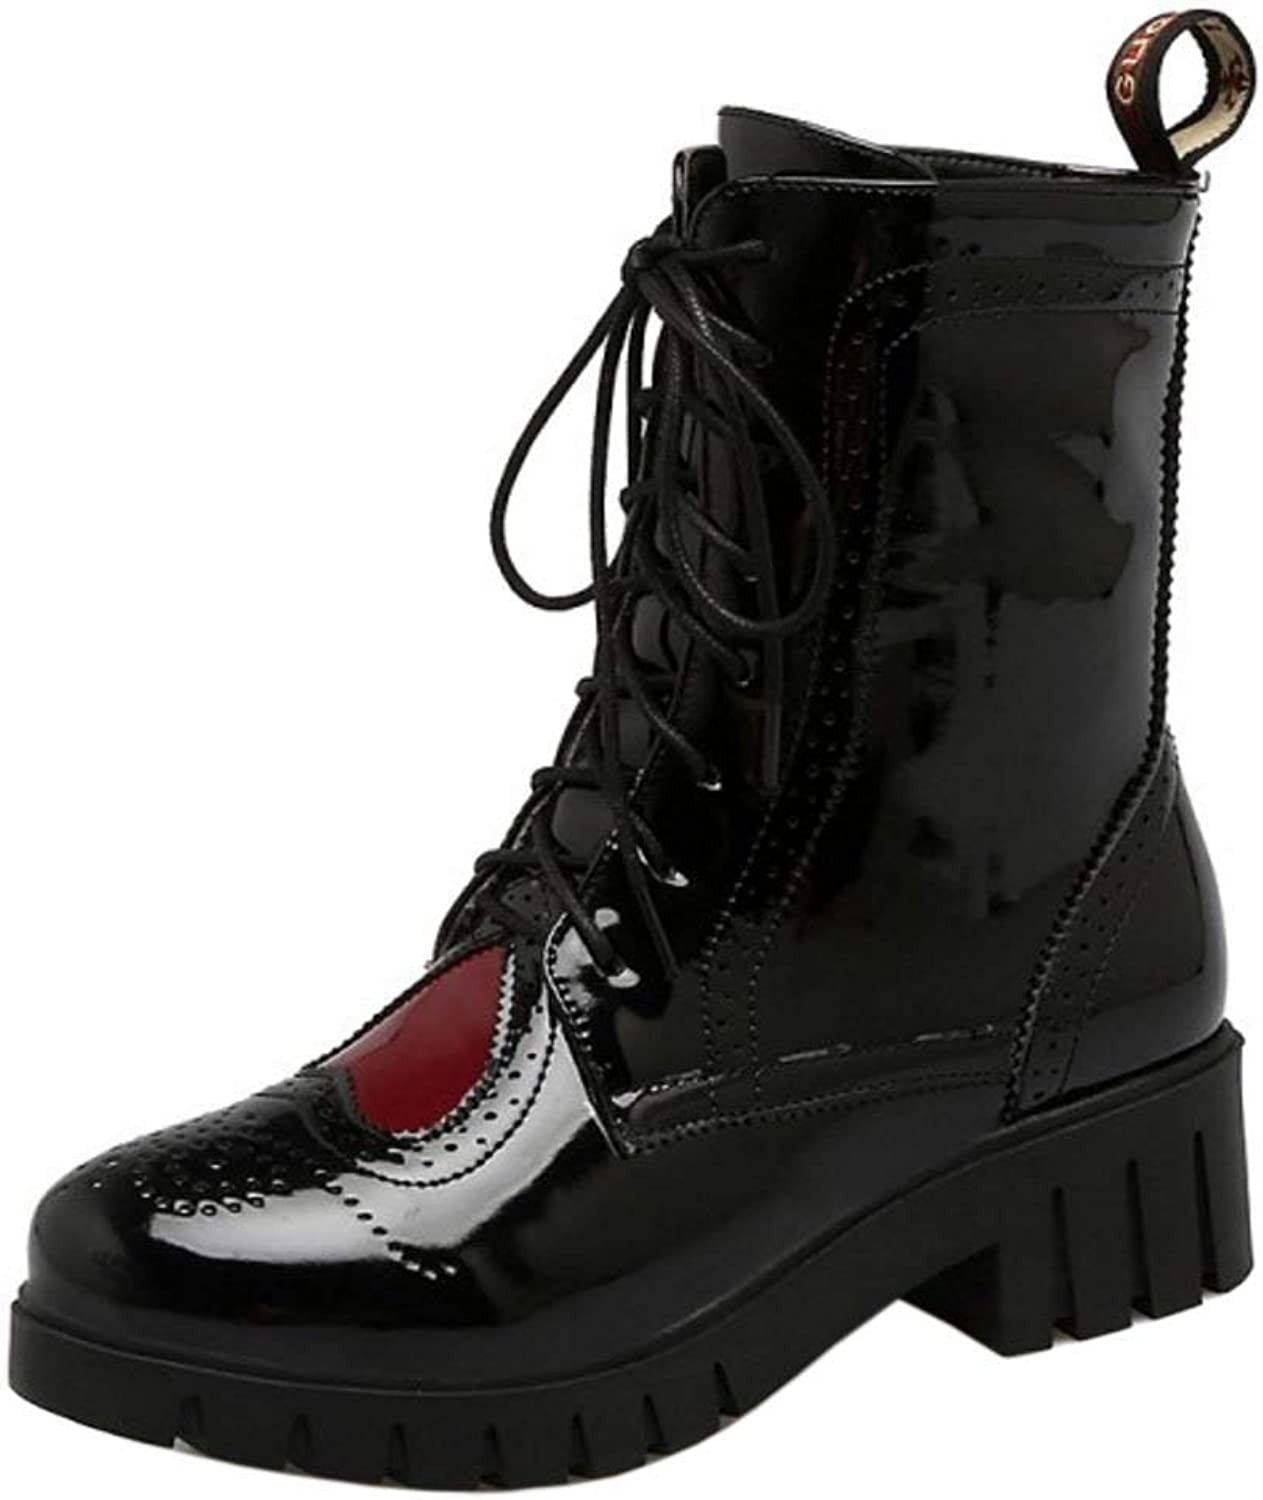 Unm Women Casual Flat Lace-up Booties shoes Martin Ankle Boots